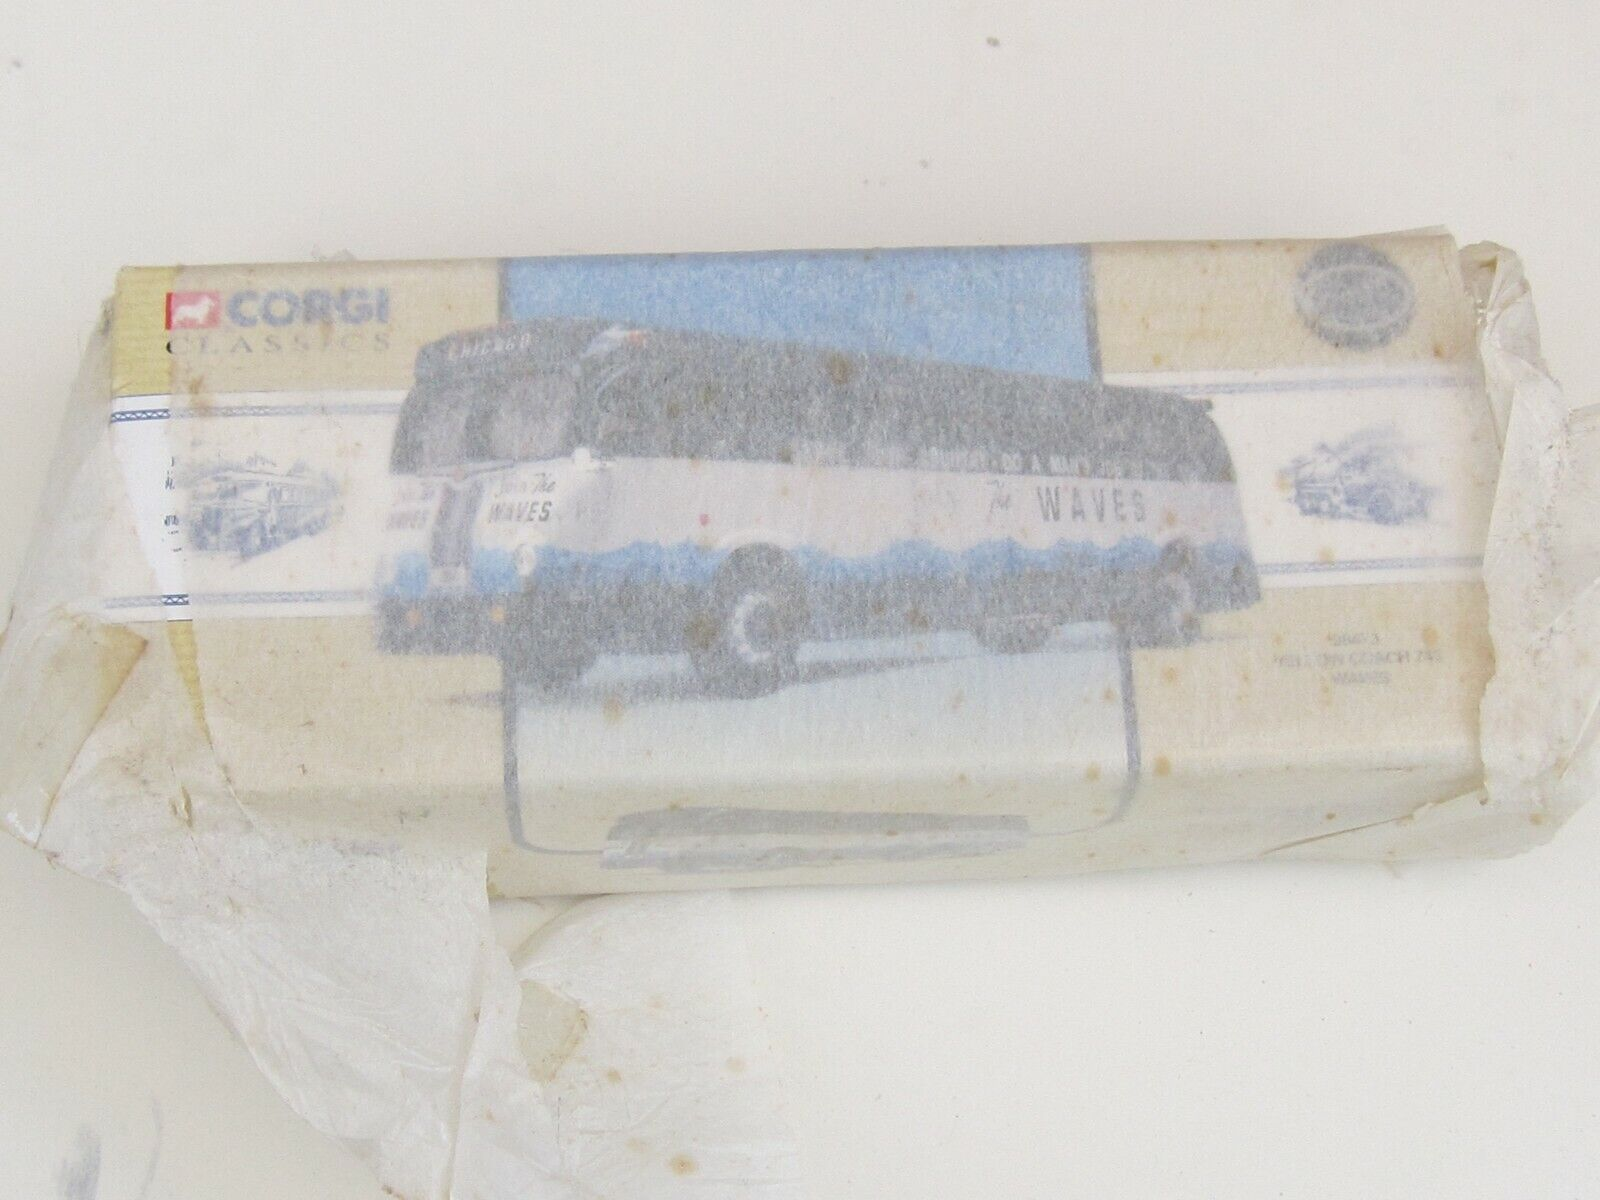 Corgi Classics Join The Waves Model Bus - with original wrapping tissue